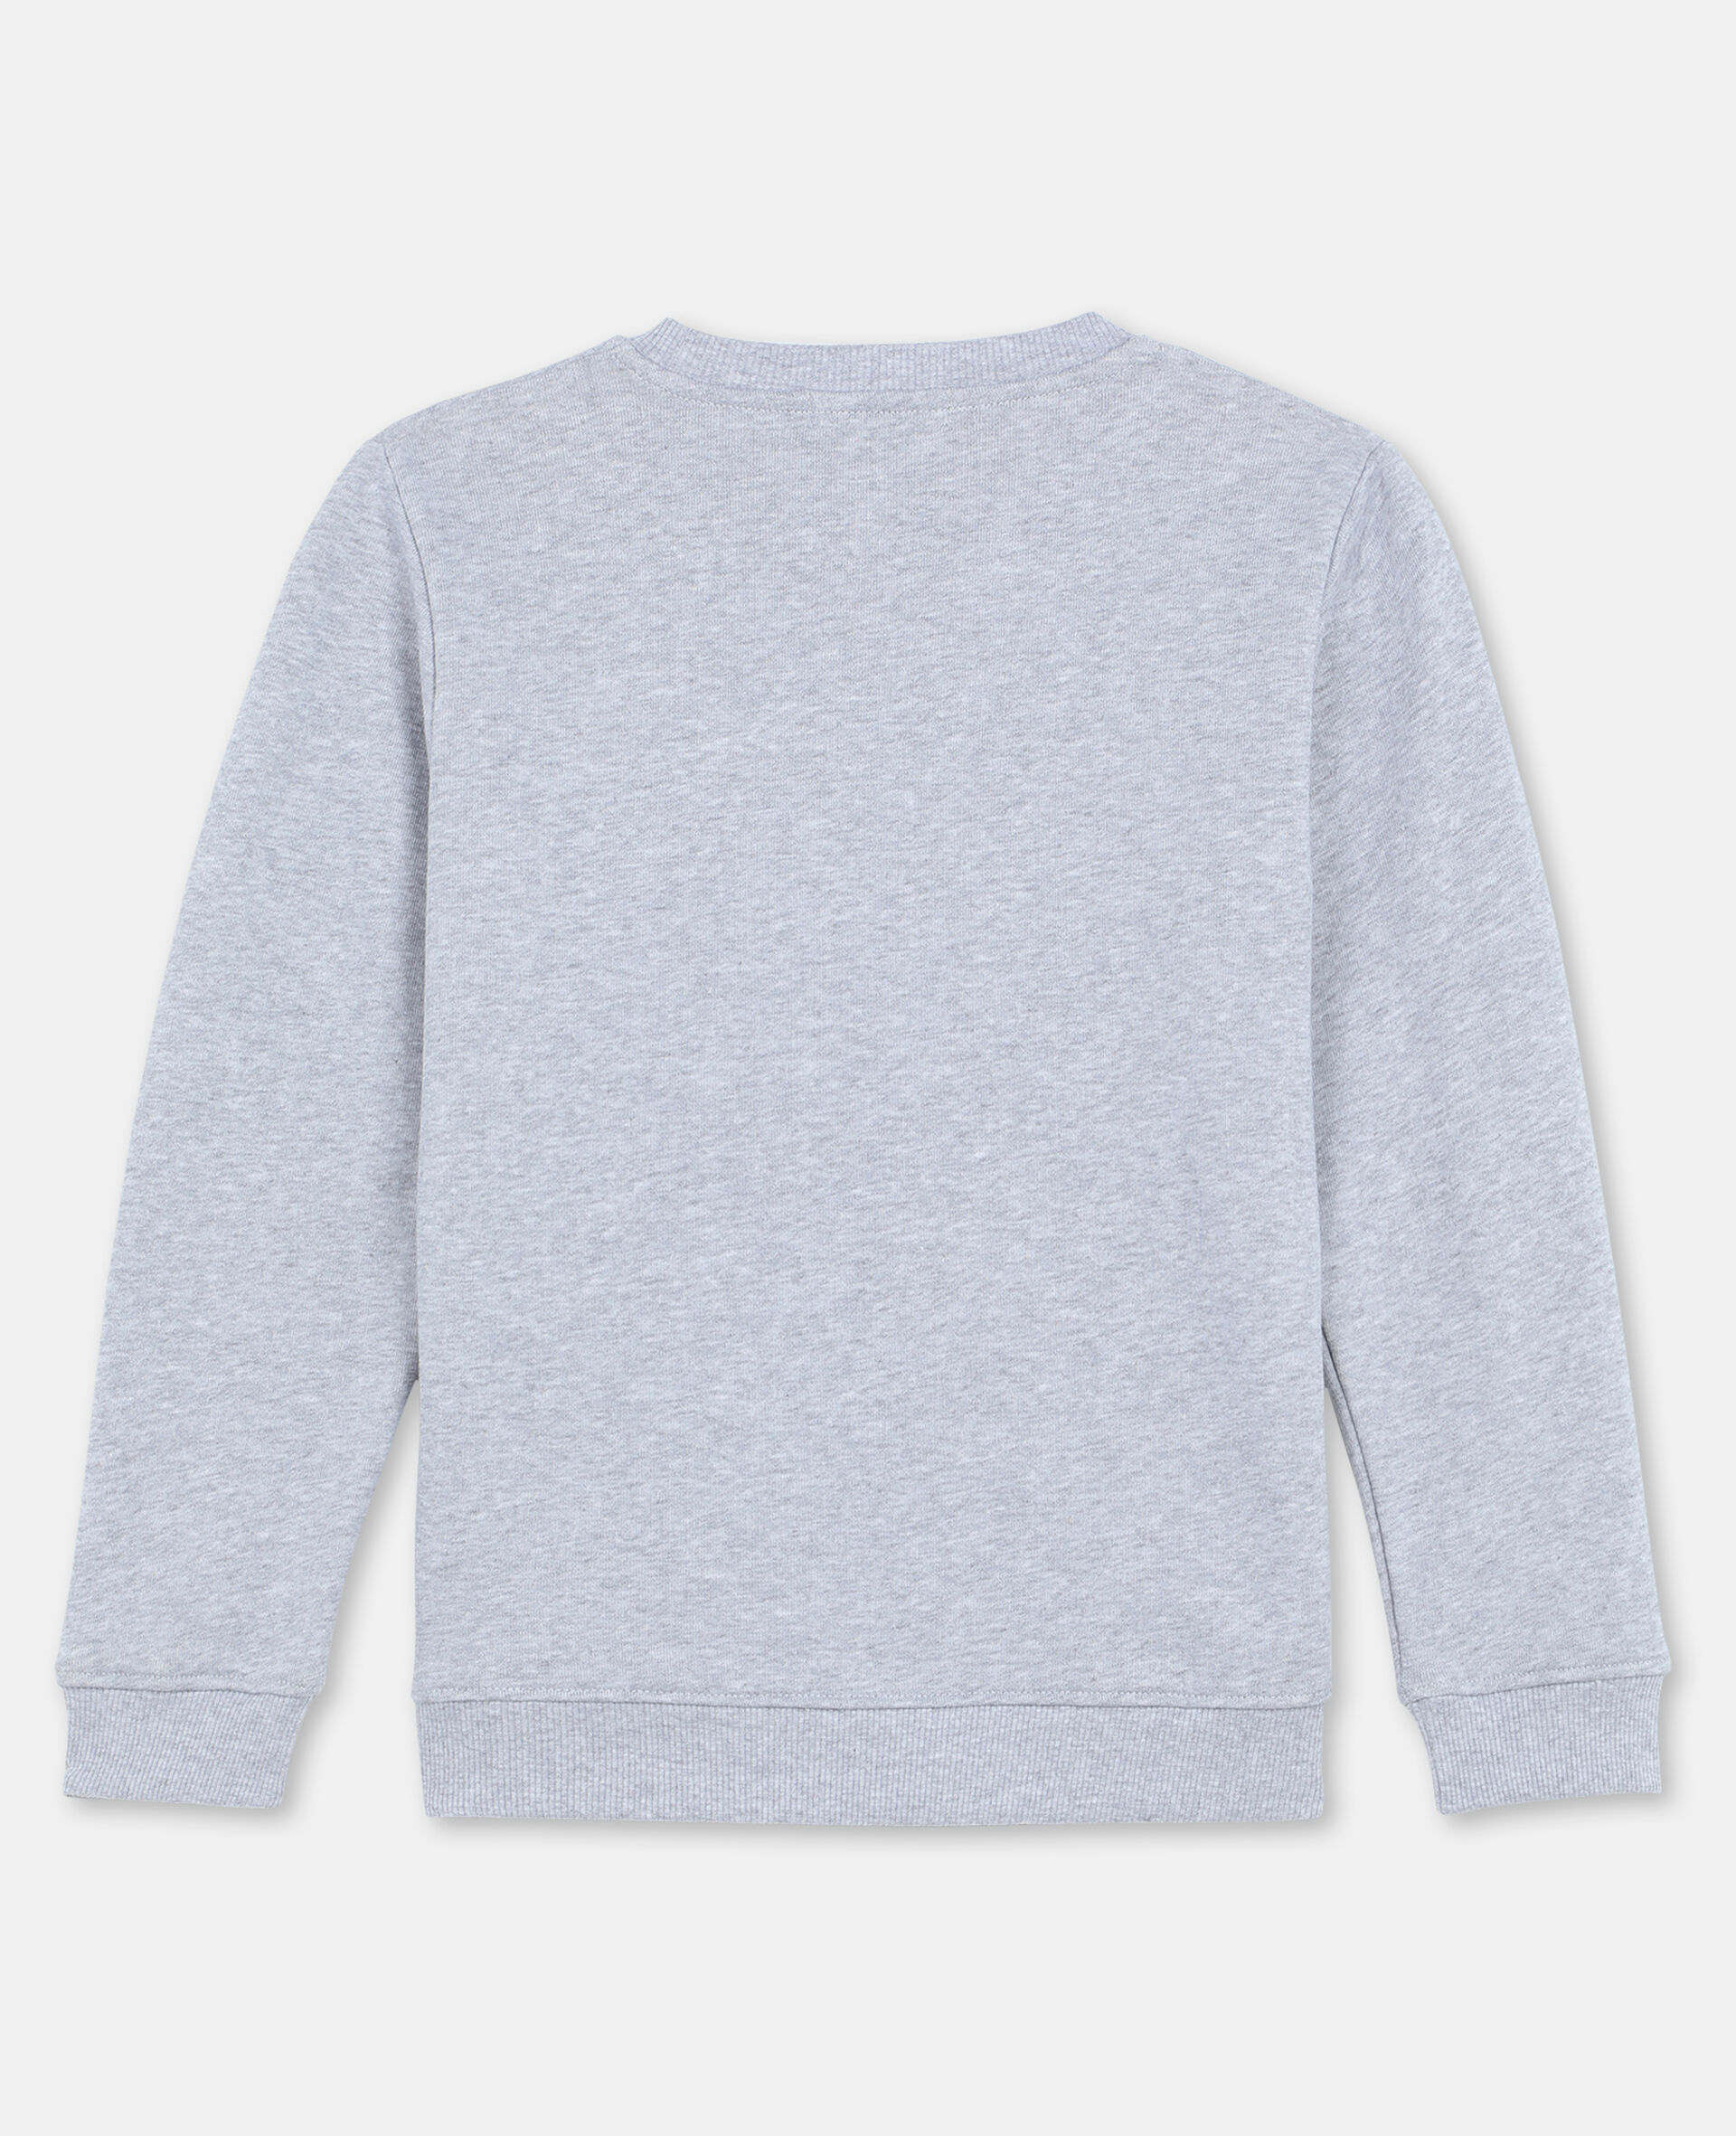 Roarrr Cotton Sweatshirt -Grey-large image number 3